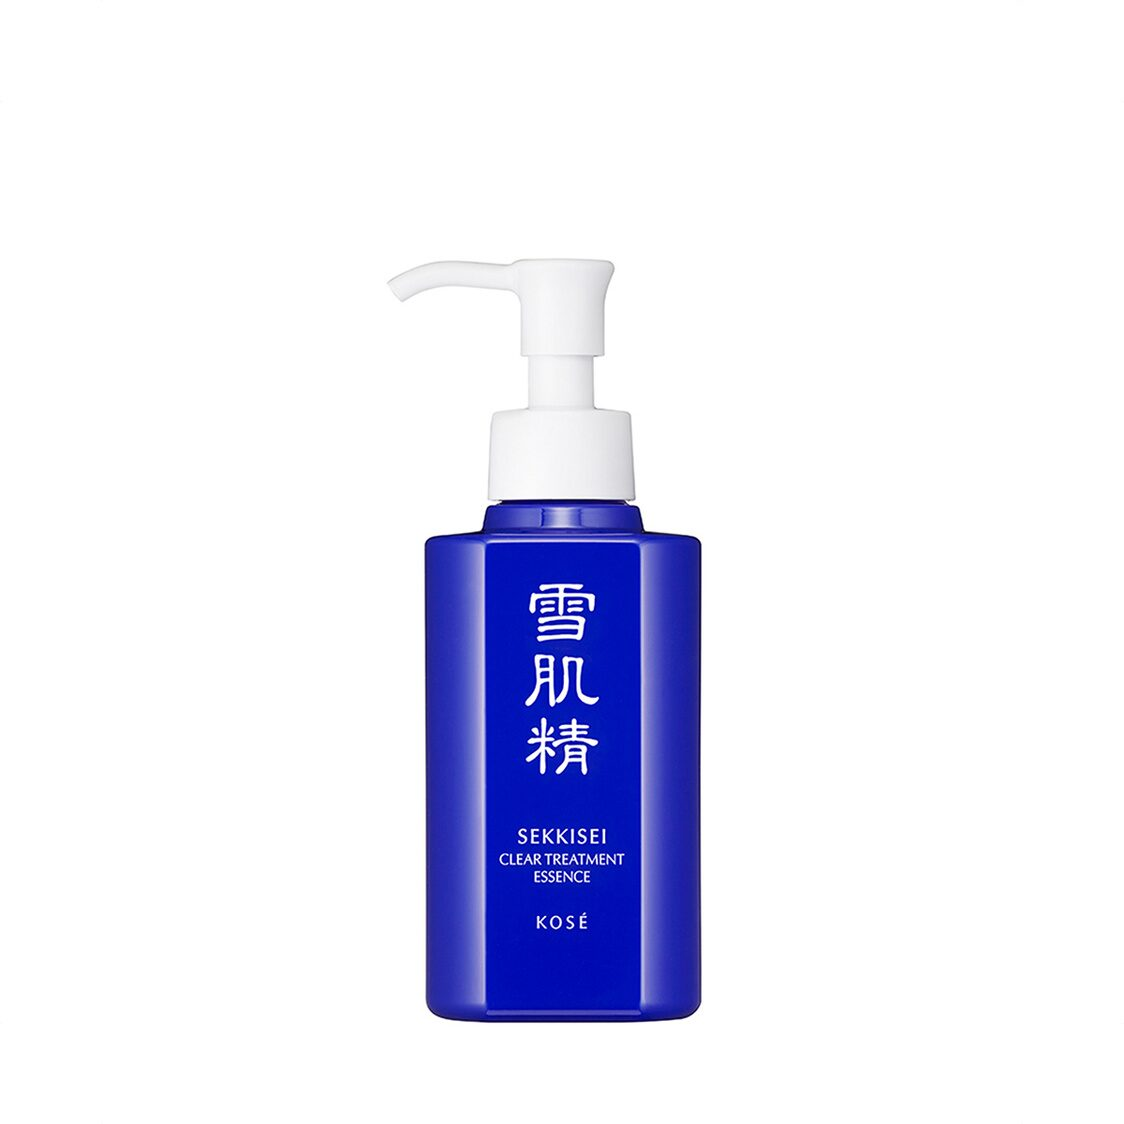 Sekkisei Clear Treatment Essence 140ml